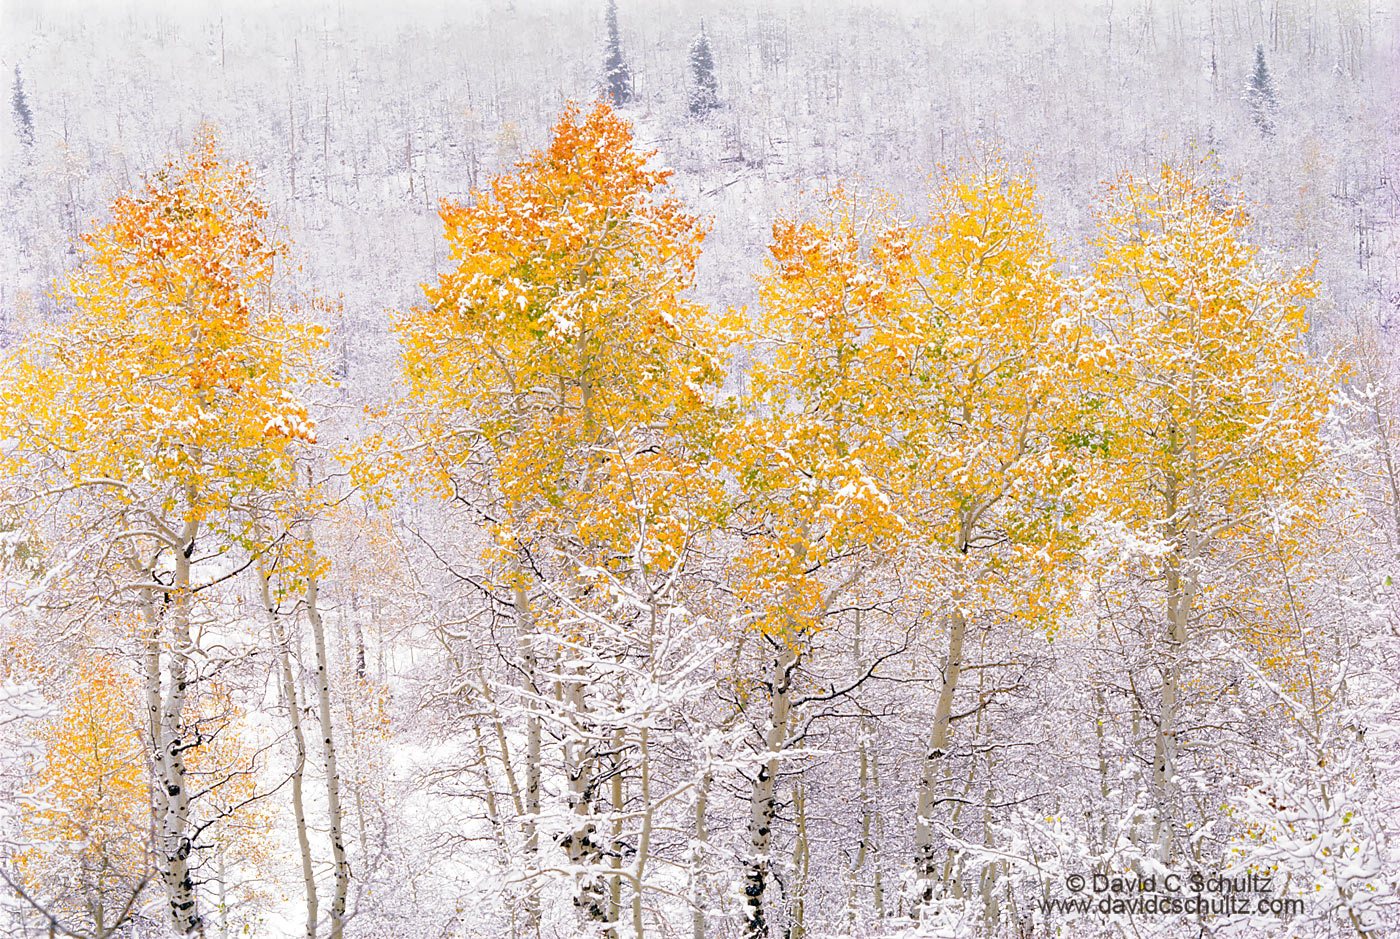 Snow covered aspen trees, Utah - Image #3-810